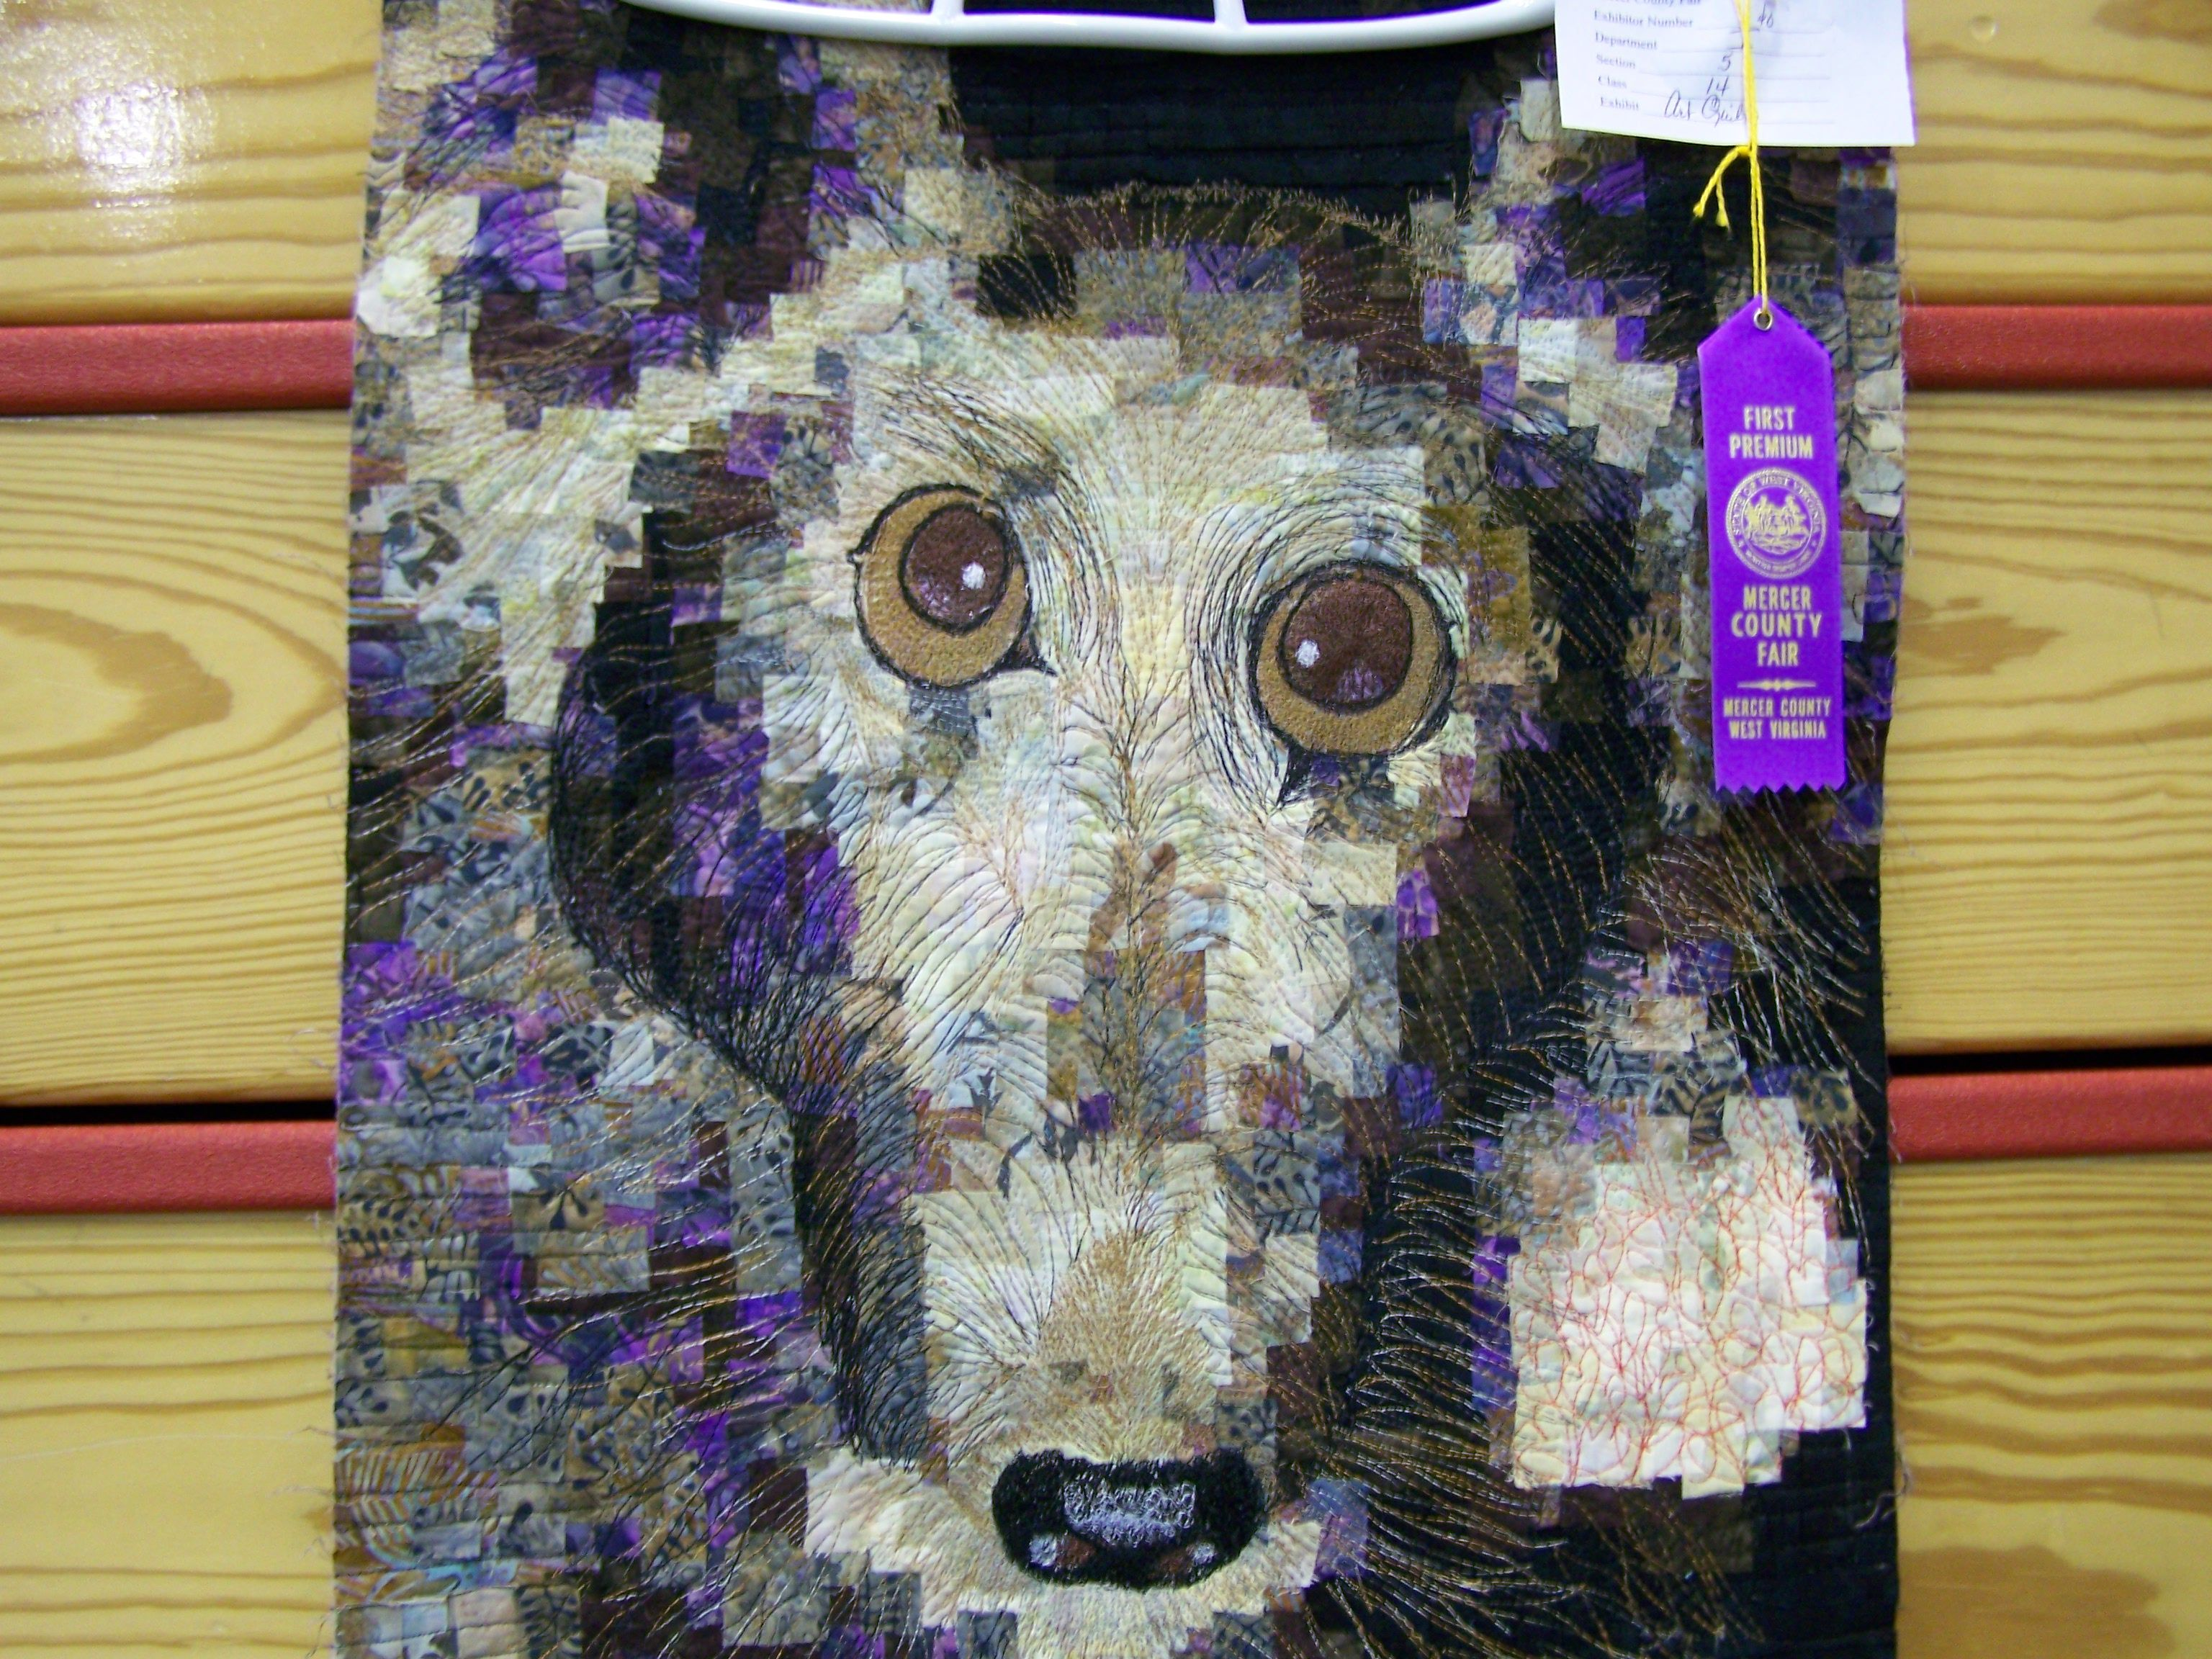 """Essene of Peppermint"" takes a first place at the Mercer County Fair."